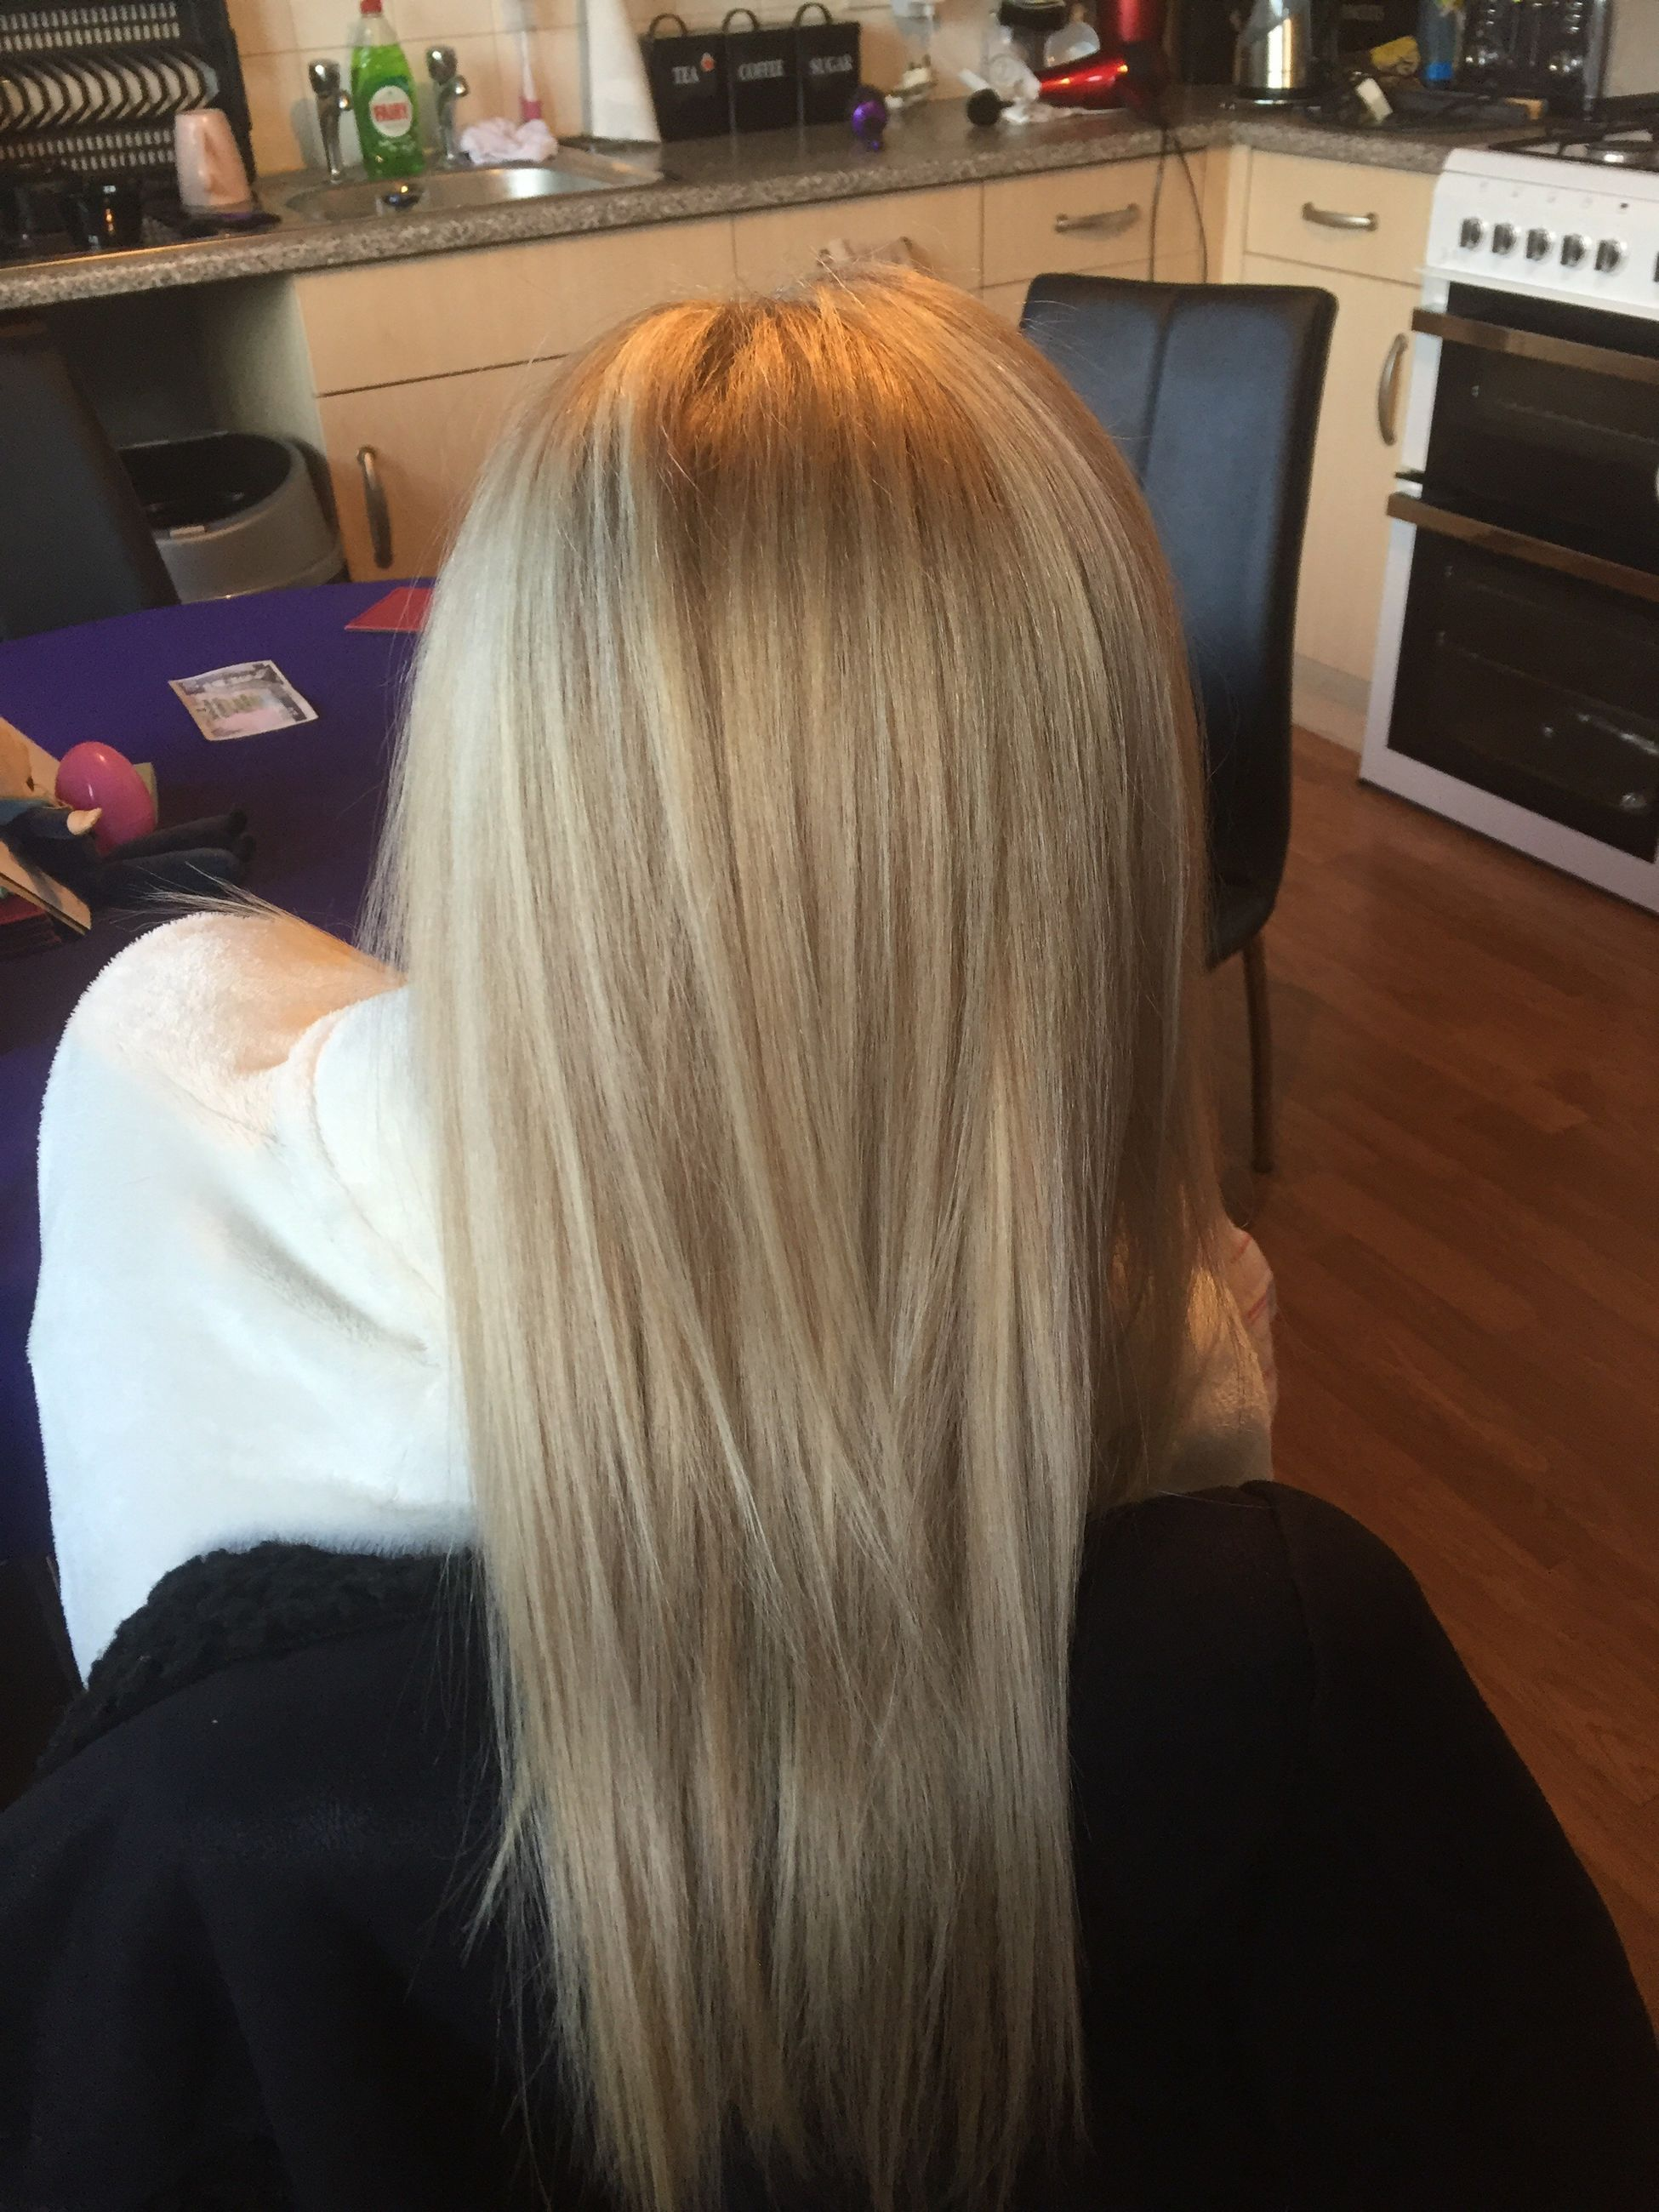 blond hair, rear view, human hair, only women, adults only, women, indoors, occupation, one person, adult, hair salon, people, close-up, day